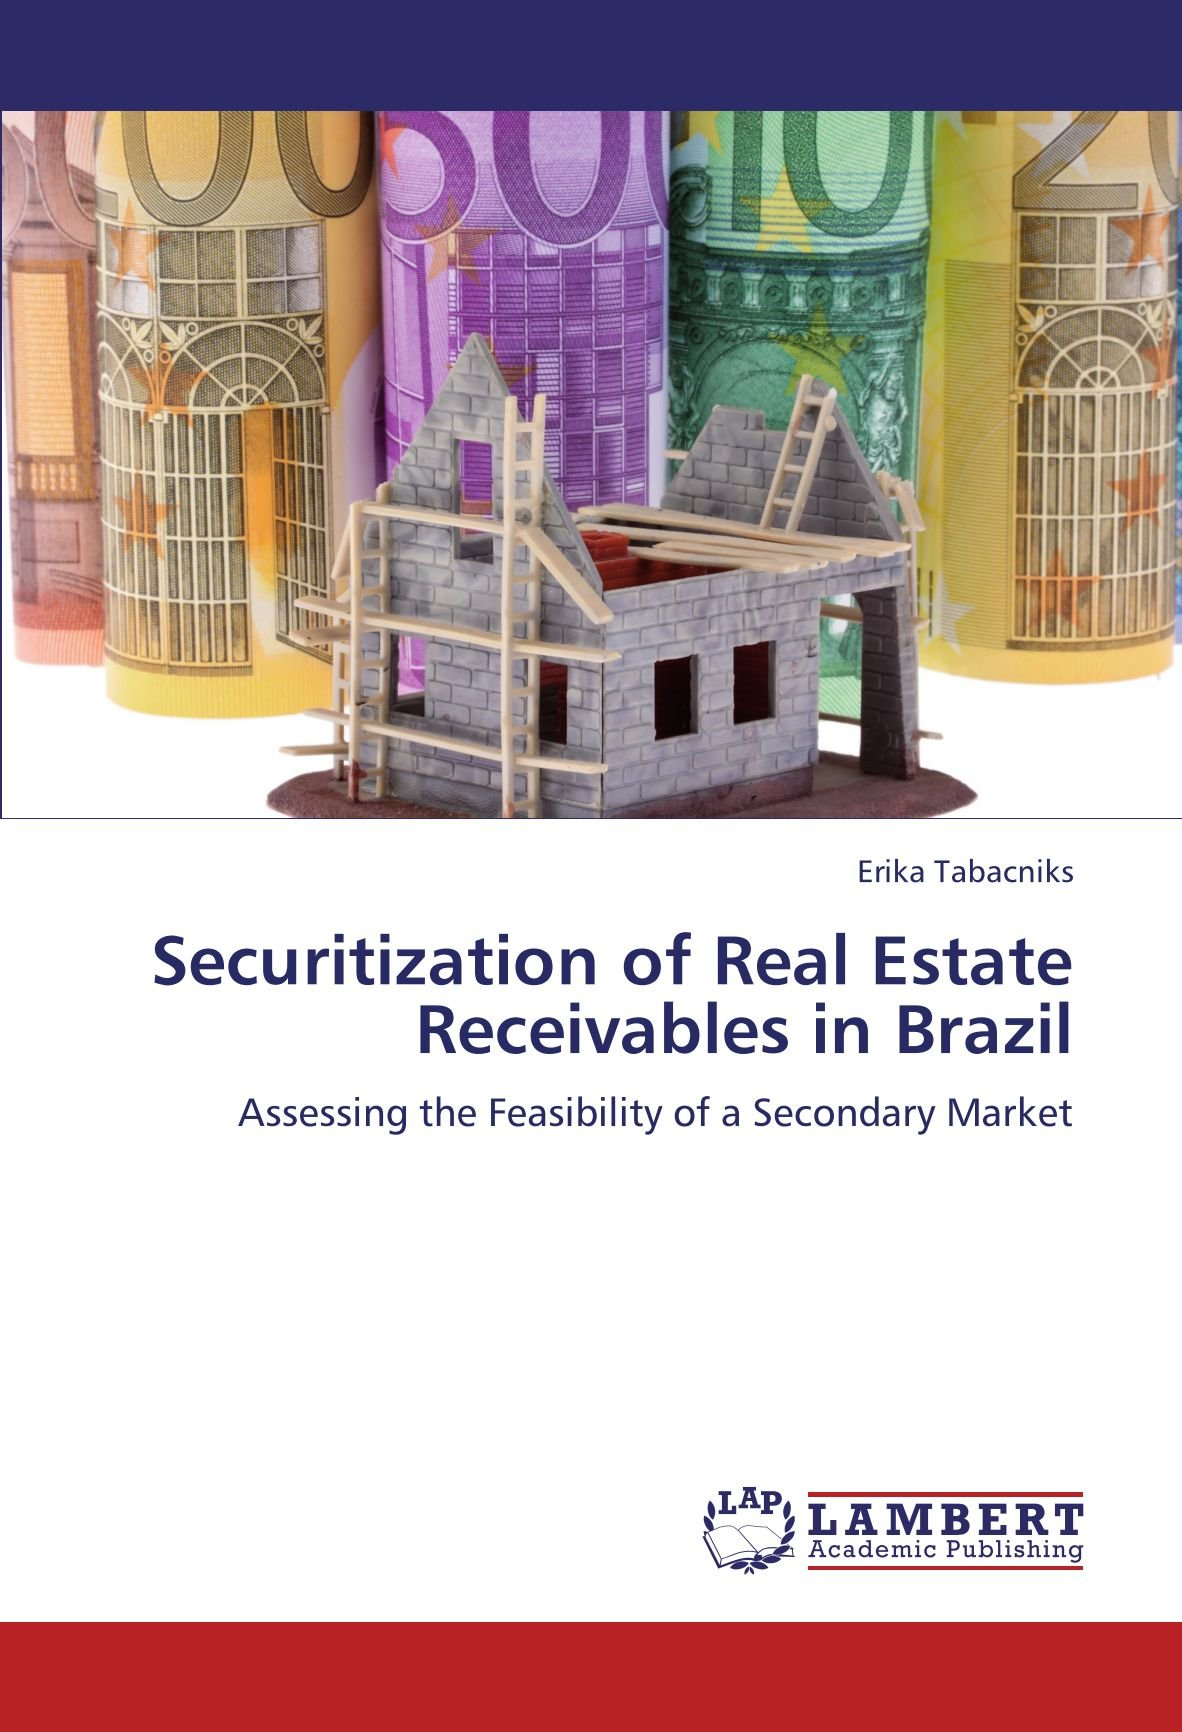 Securitization of Real Estate Receivables in Brazil: Assessing the